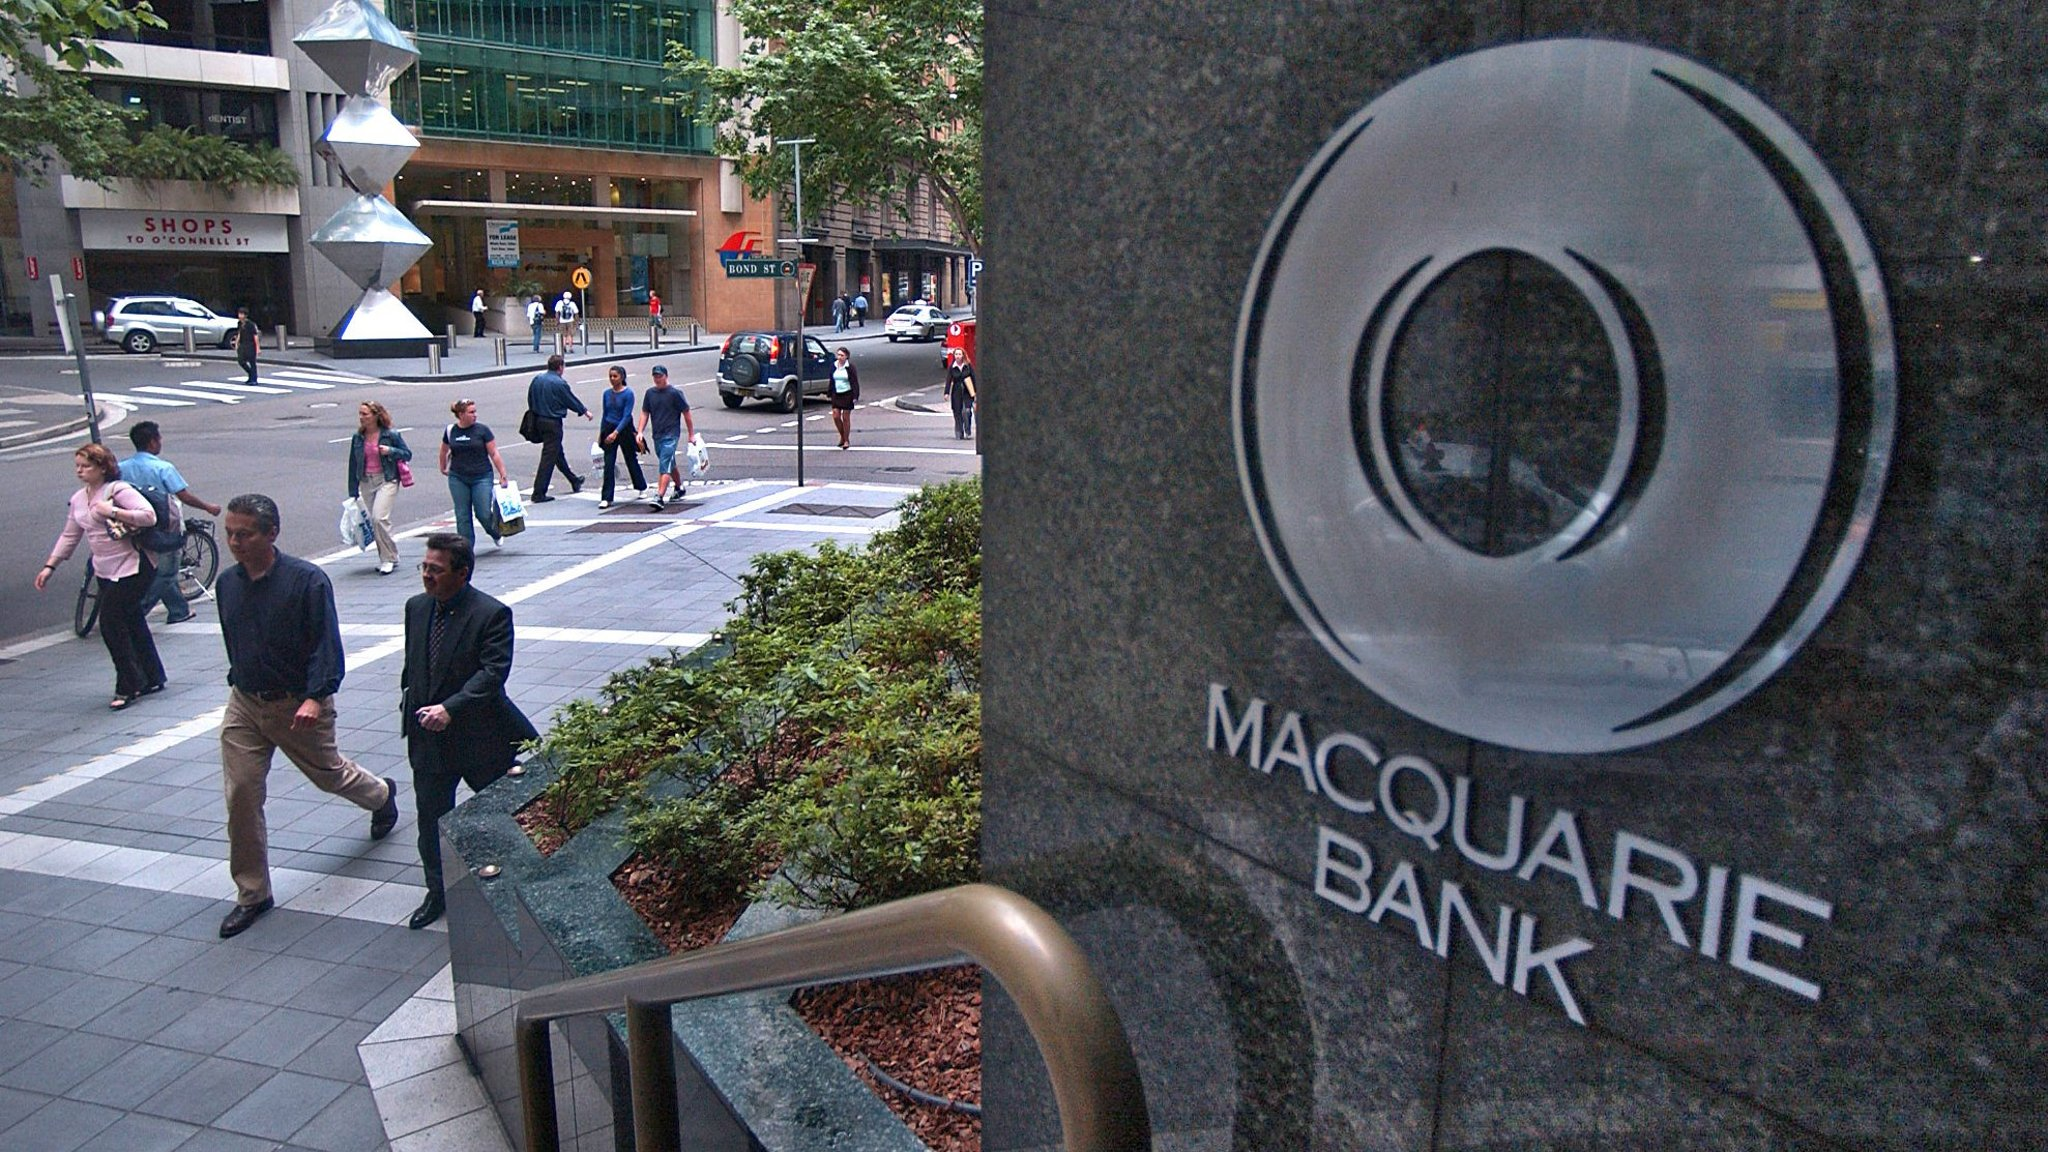 Macquarie admits to mismanagement of fund financial times malvernweather Choice Image